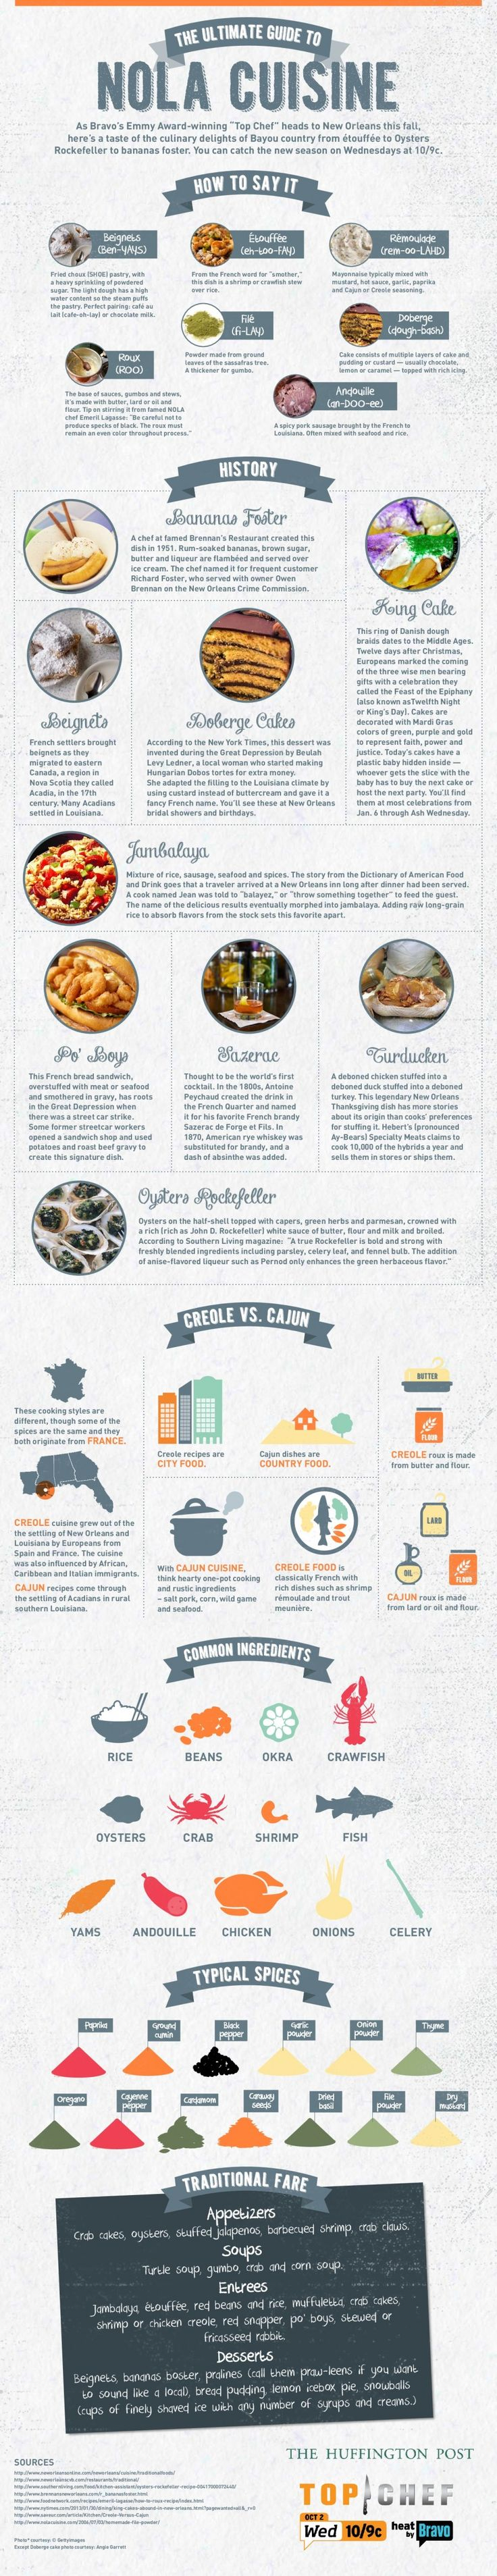 Food infographic infographic the ultimate guide to nola for Cuisine good food guide 2017